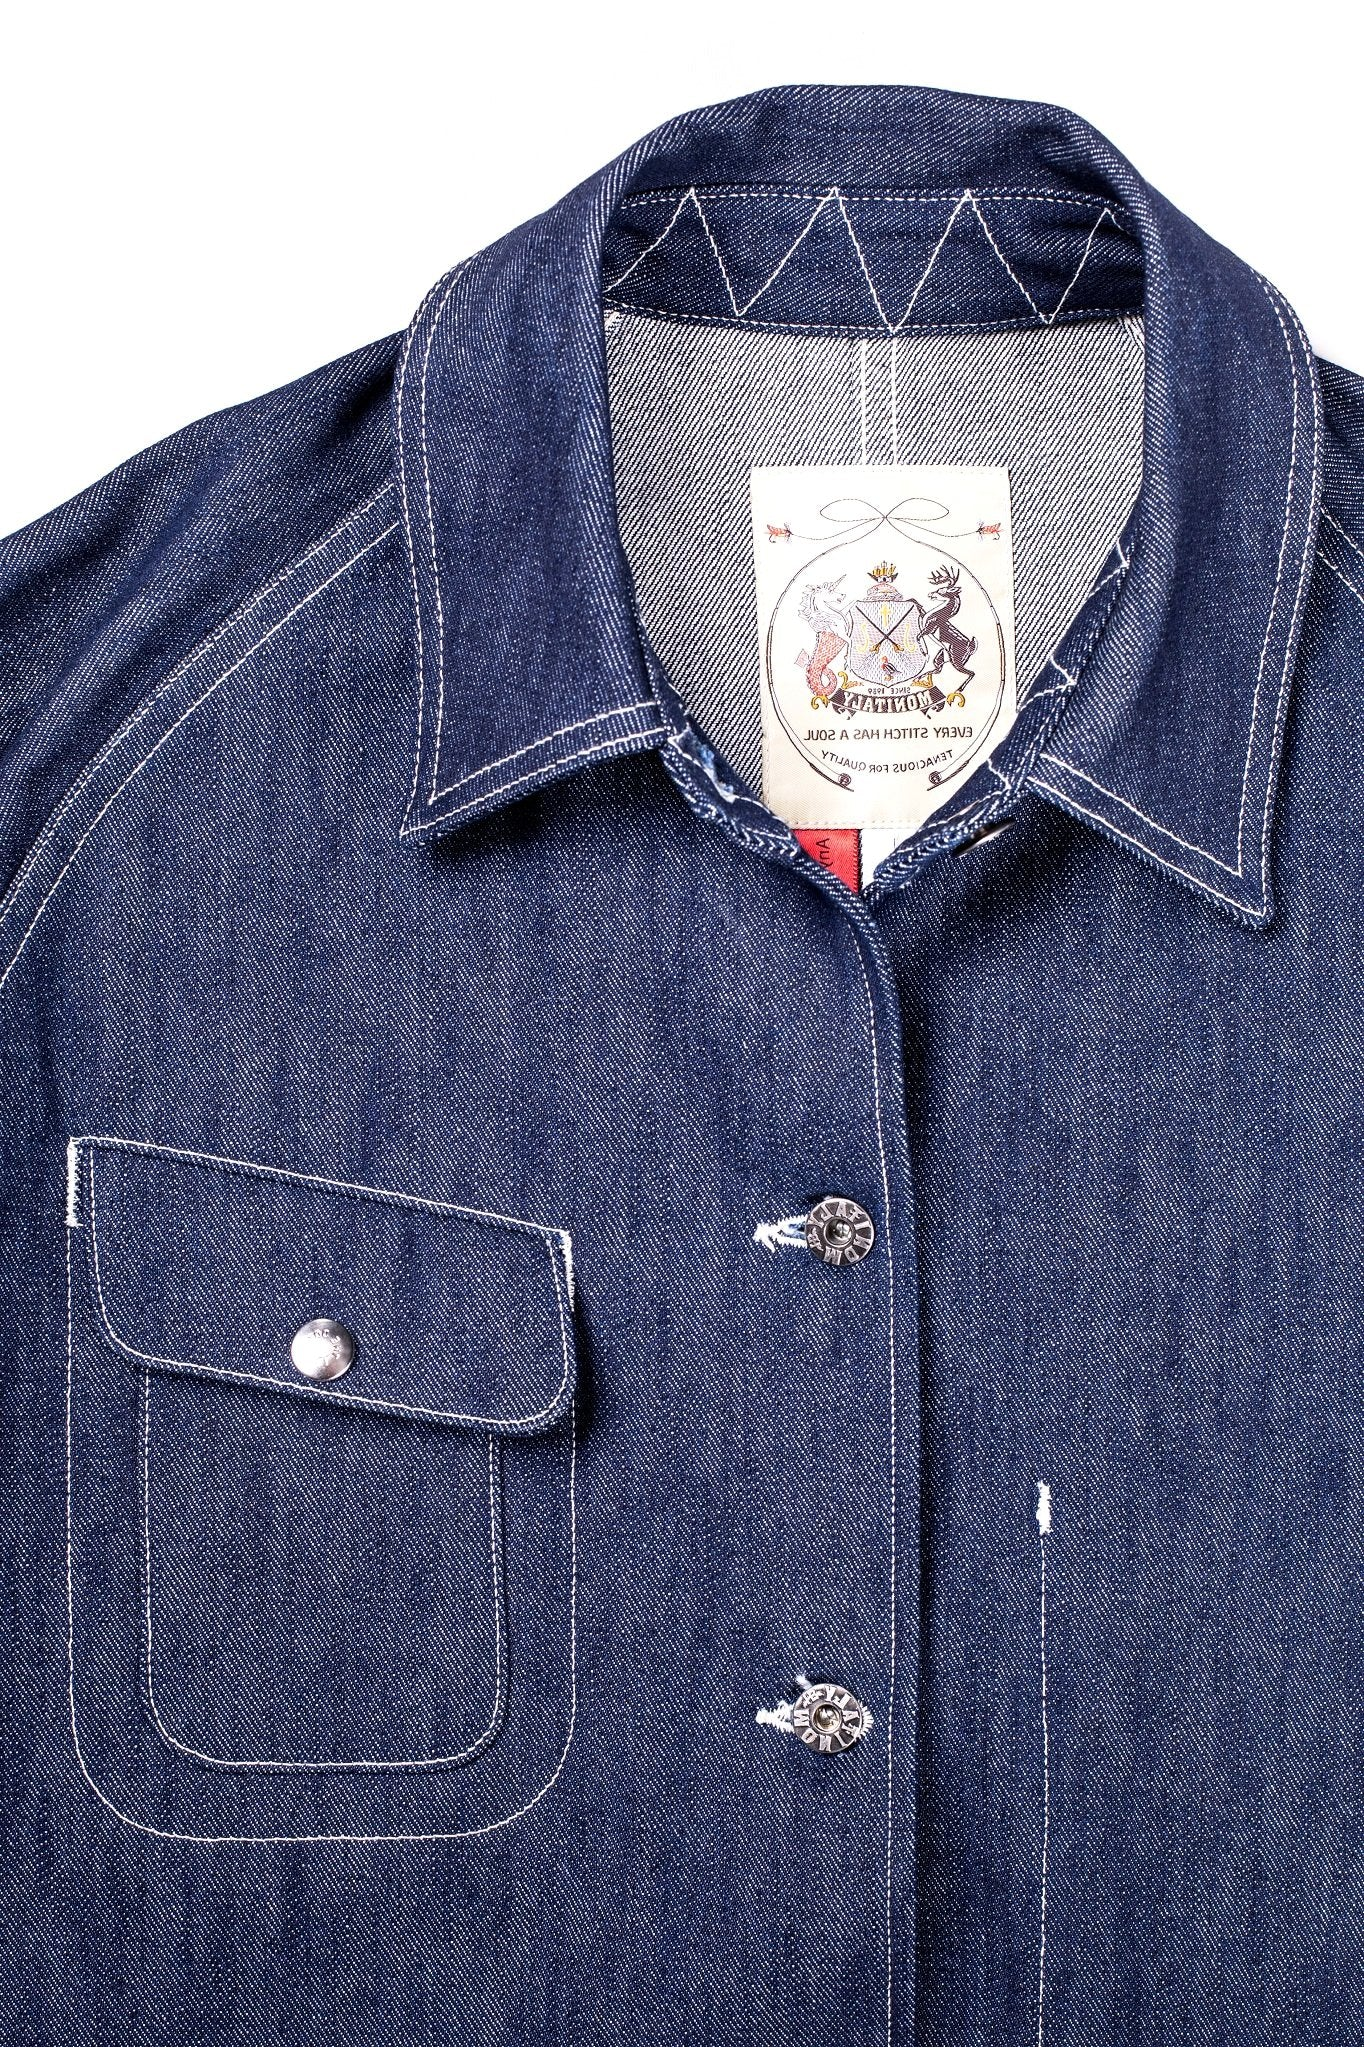 Monitaly Denim Coverall - Atacama Clothing